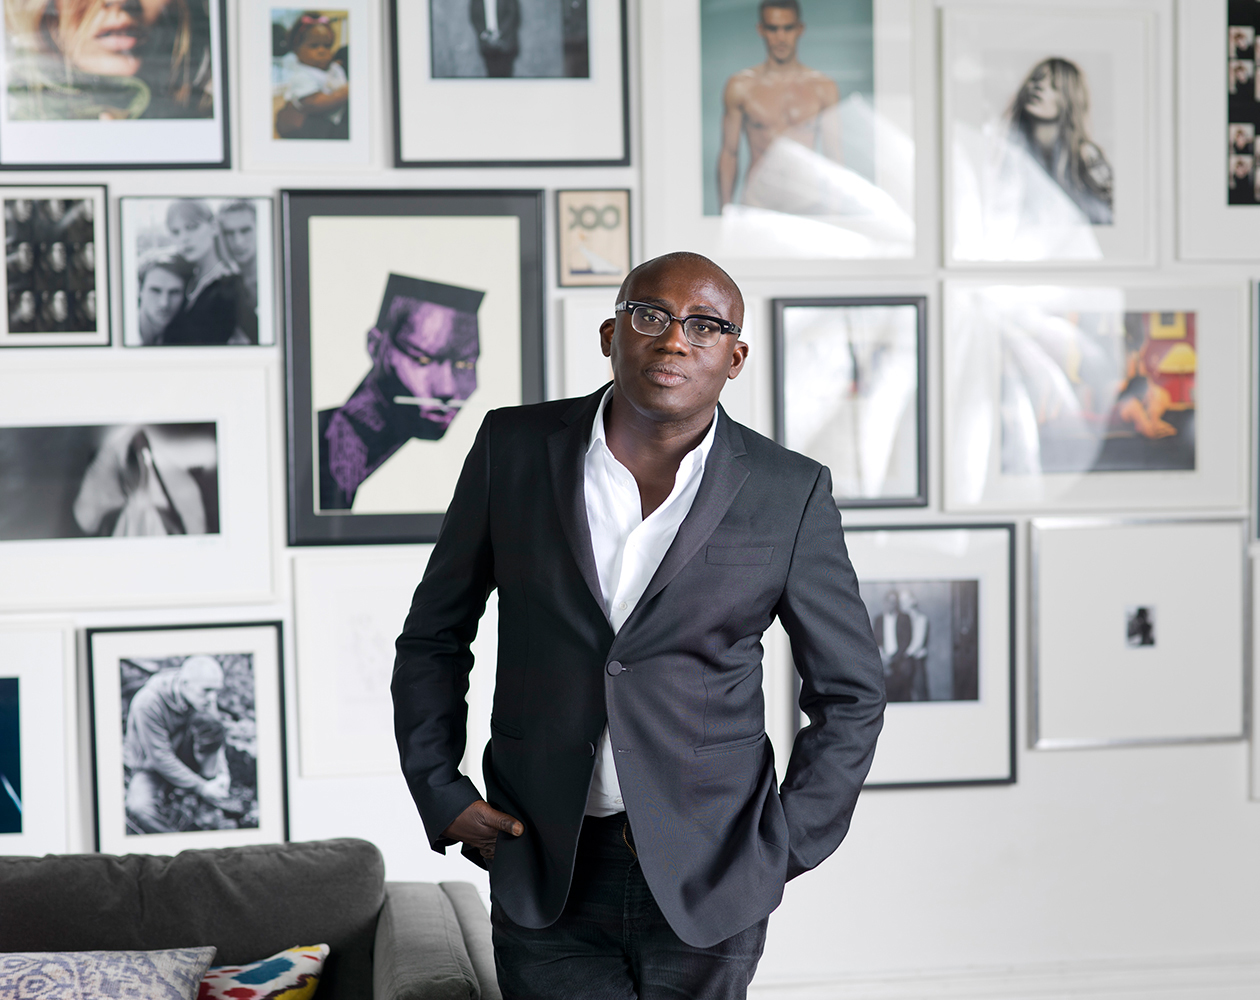 British Vogue Appoints Ghanaian Born Stylist, Edward Enninful, As Its First Black Editor